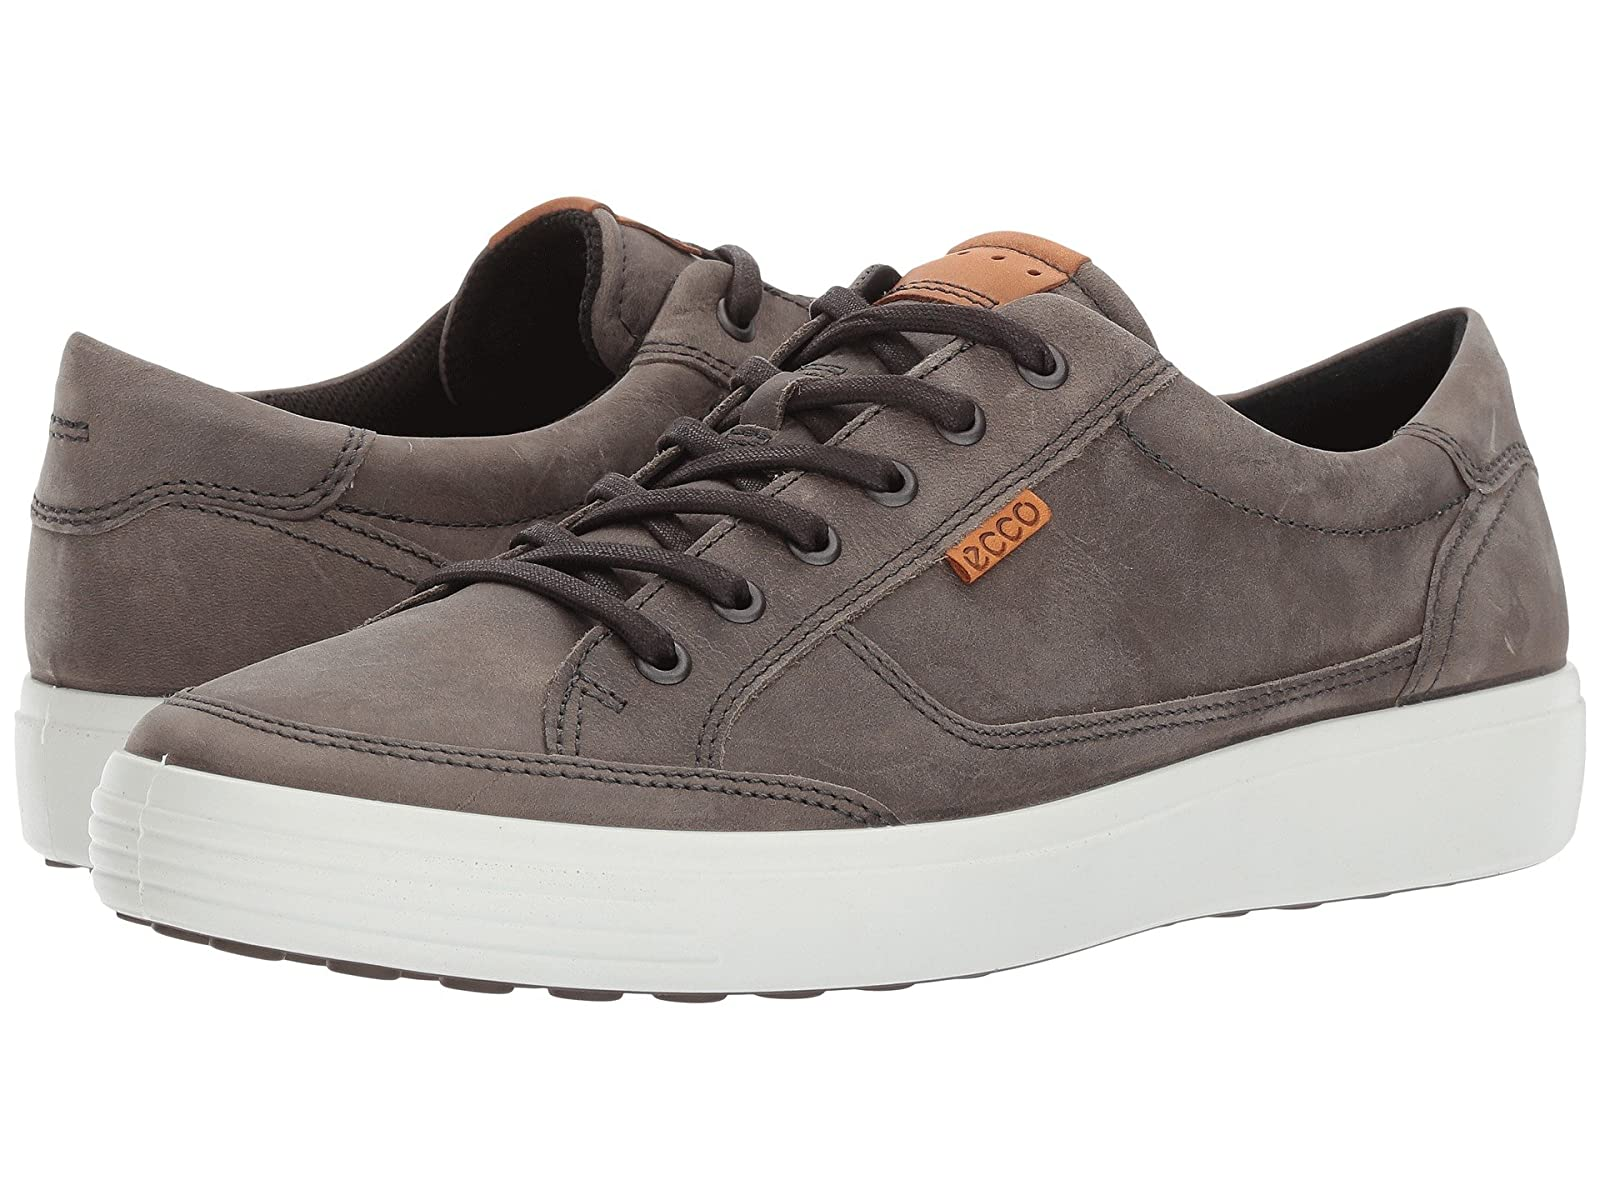 ECCO Soft Retro SneakerAtmospheric grades have affordable shoes